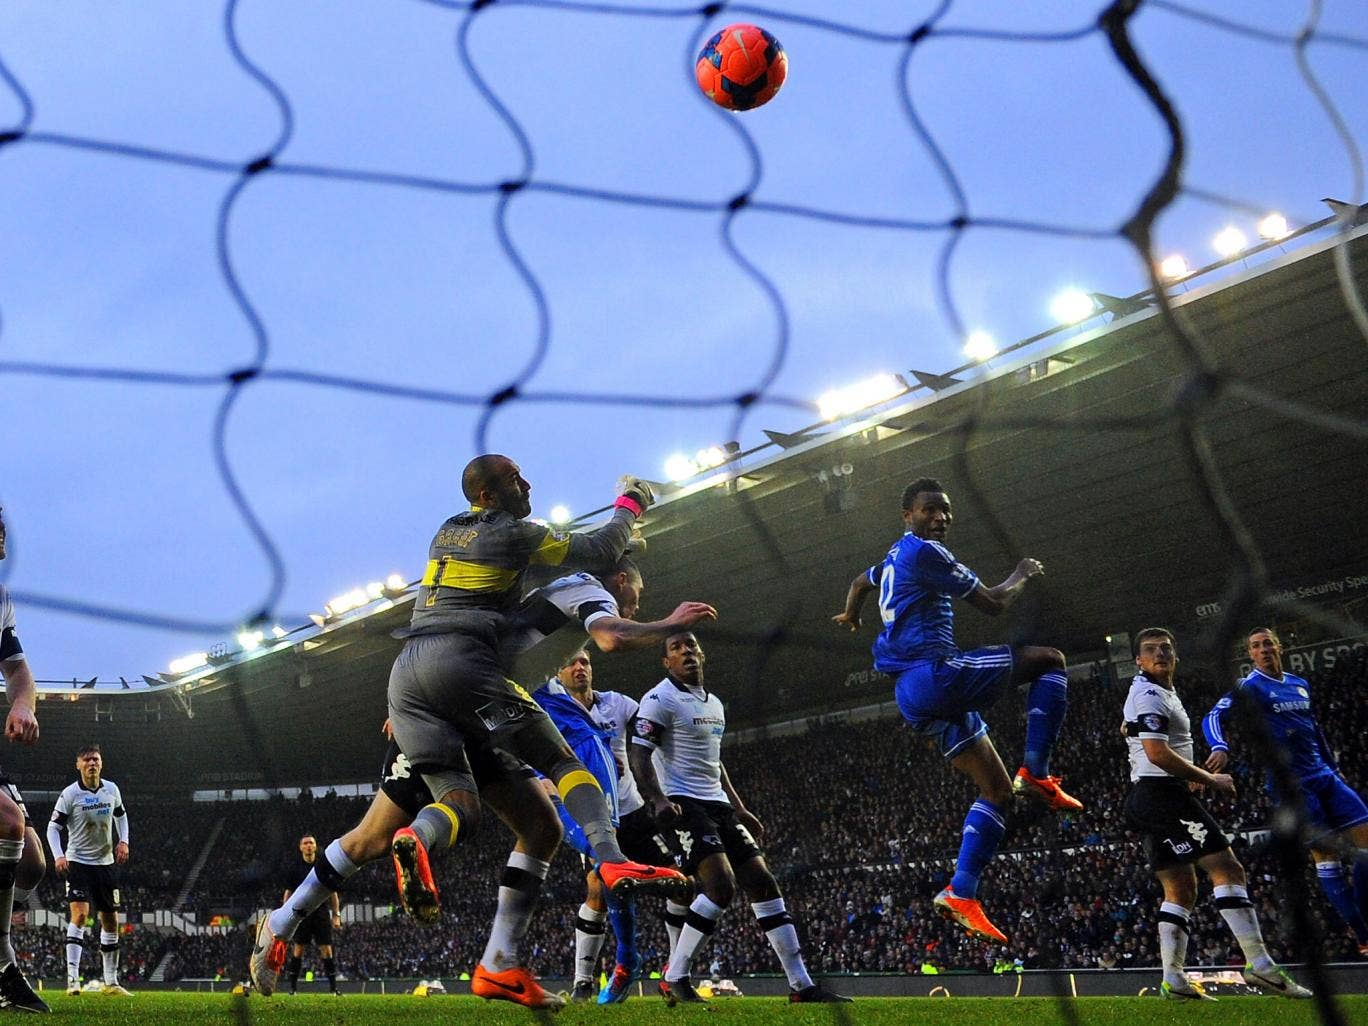 John Obi Mikel heads in Chelsea's opening goal against Derby on Sunday